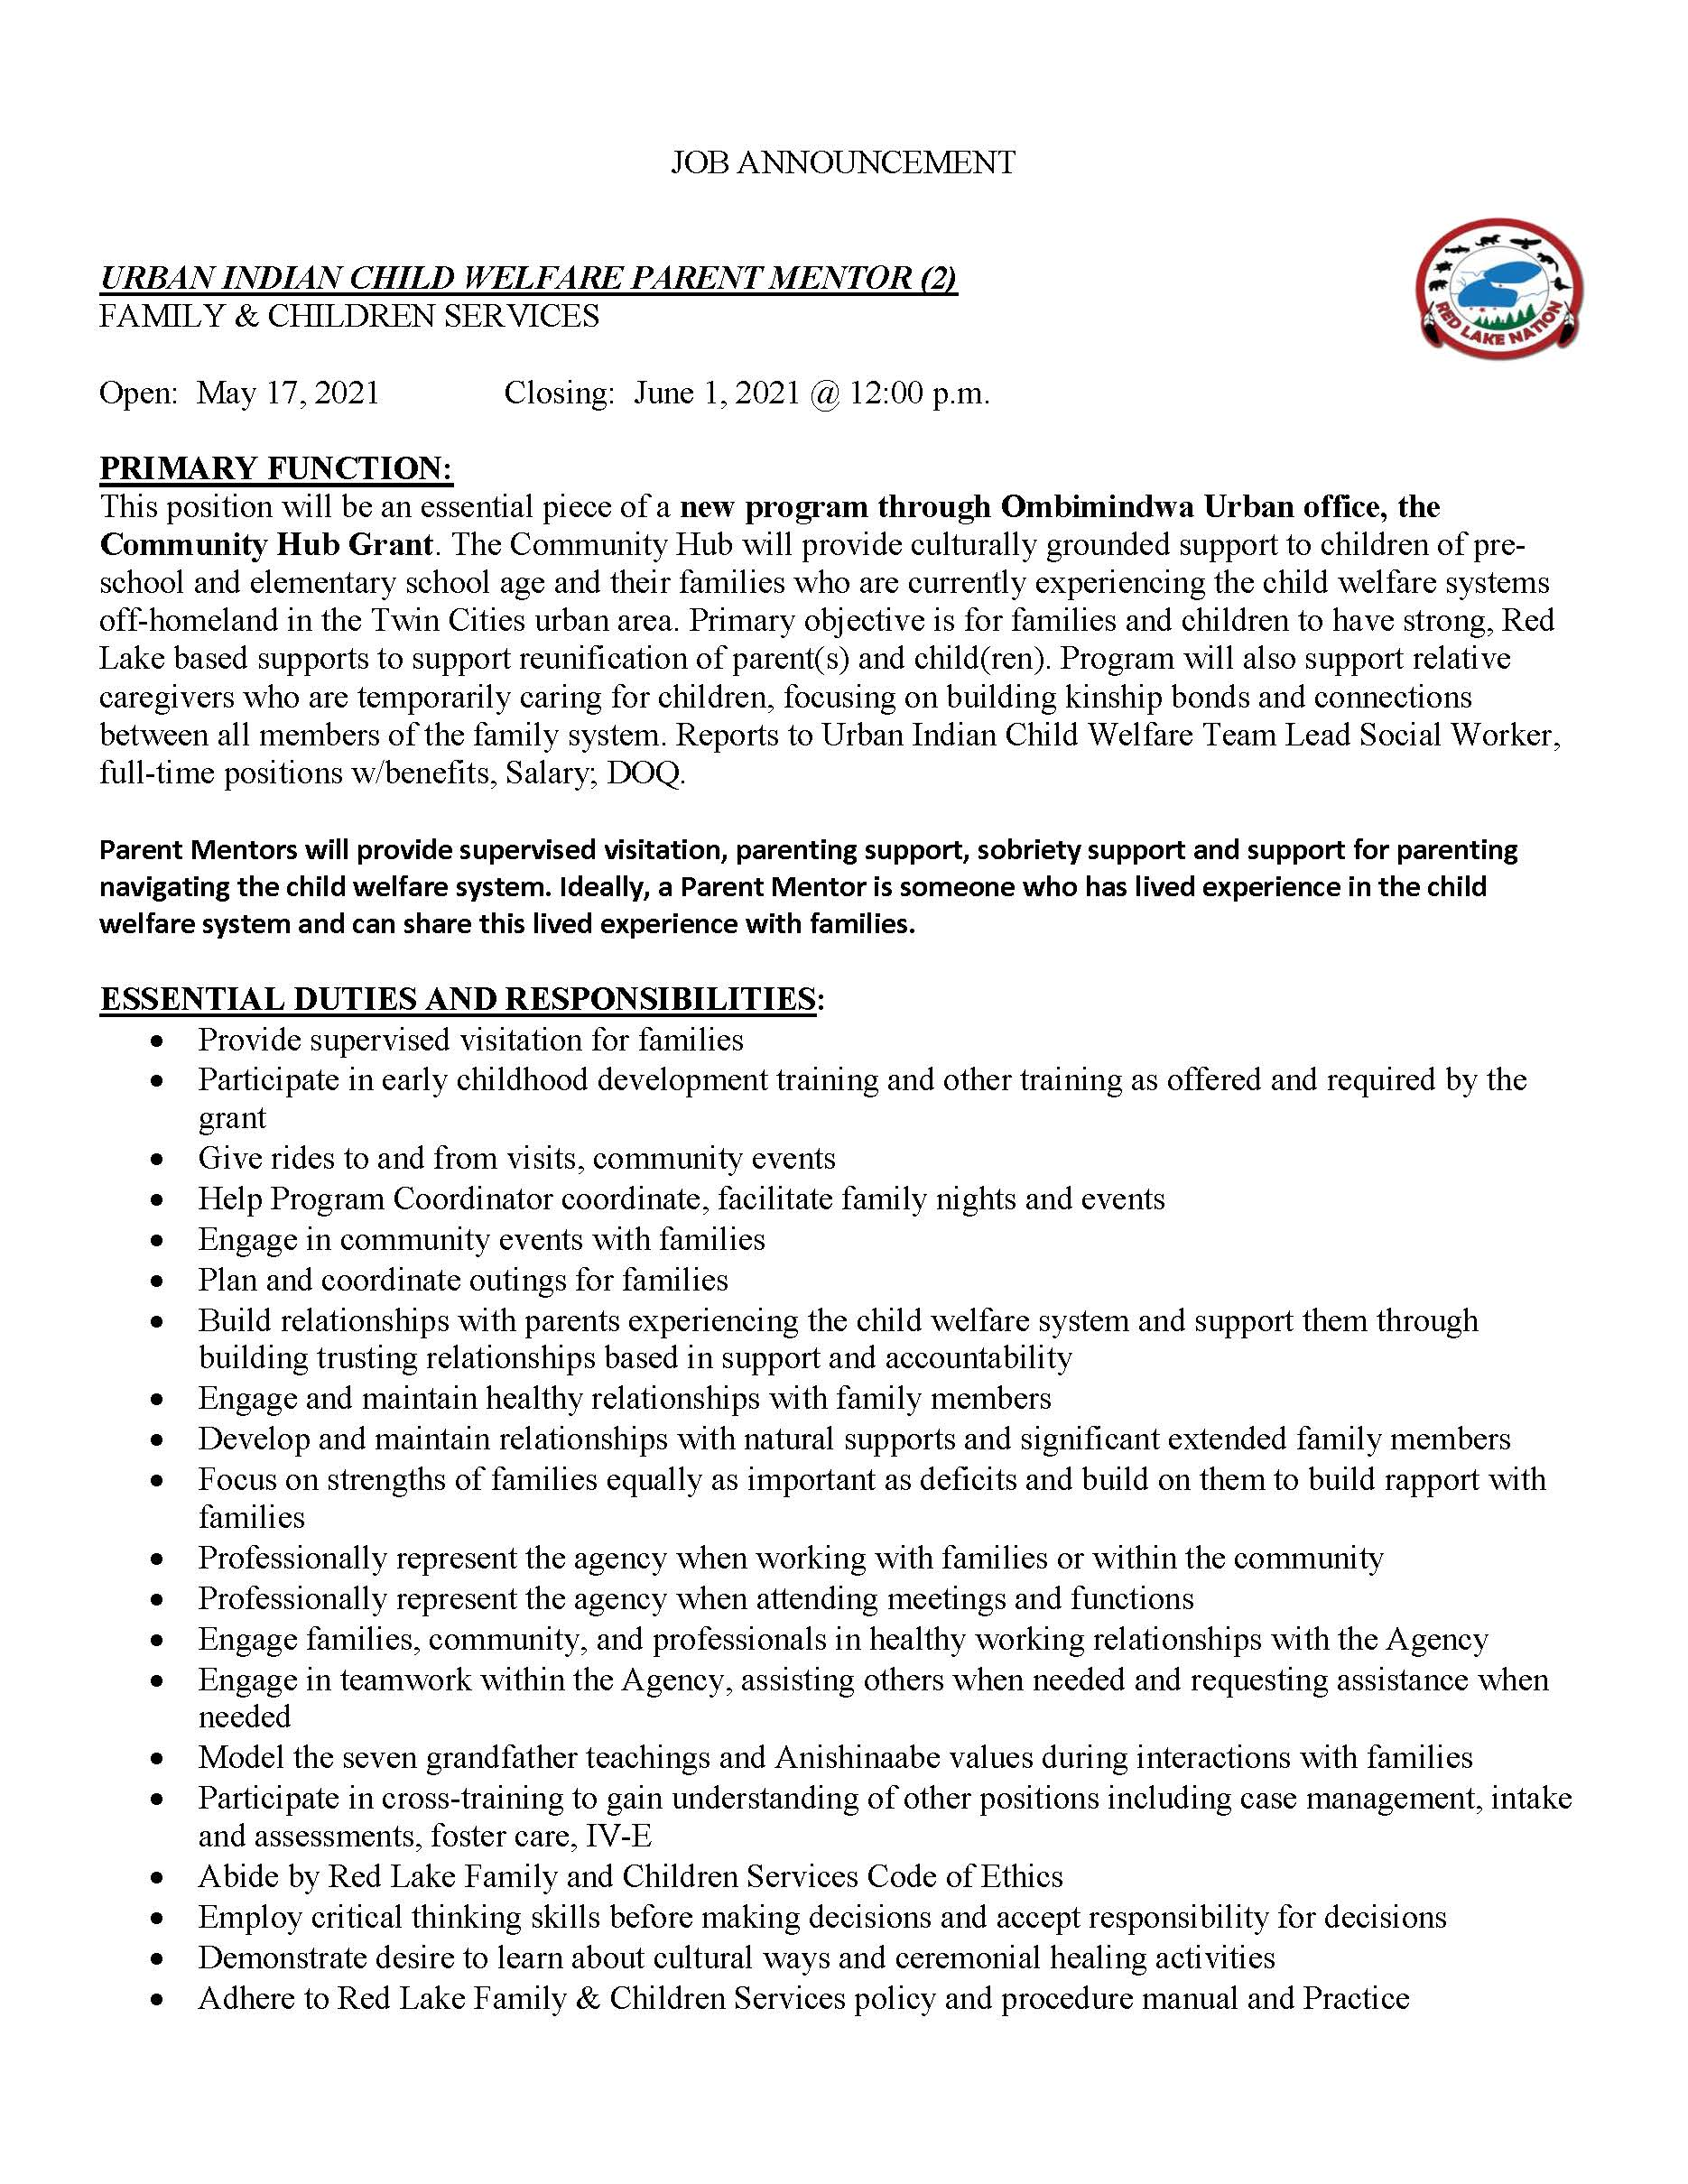 Urban Indian Child Welfare Parent Mentor 2-Family Children Services-Job Posting 5-20-2021_Page_1